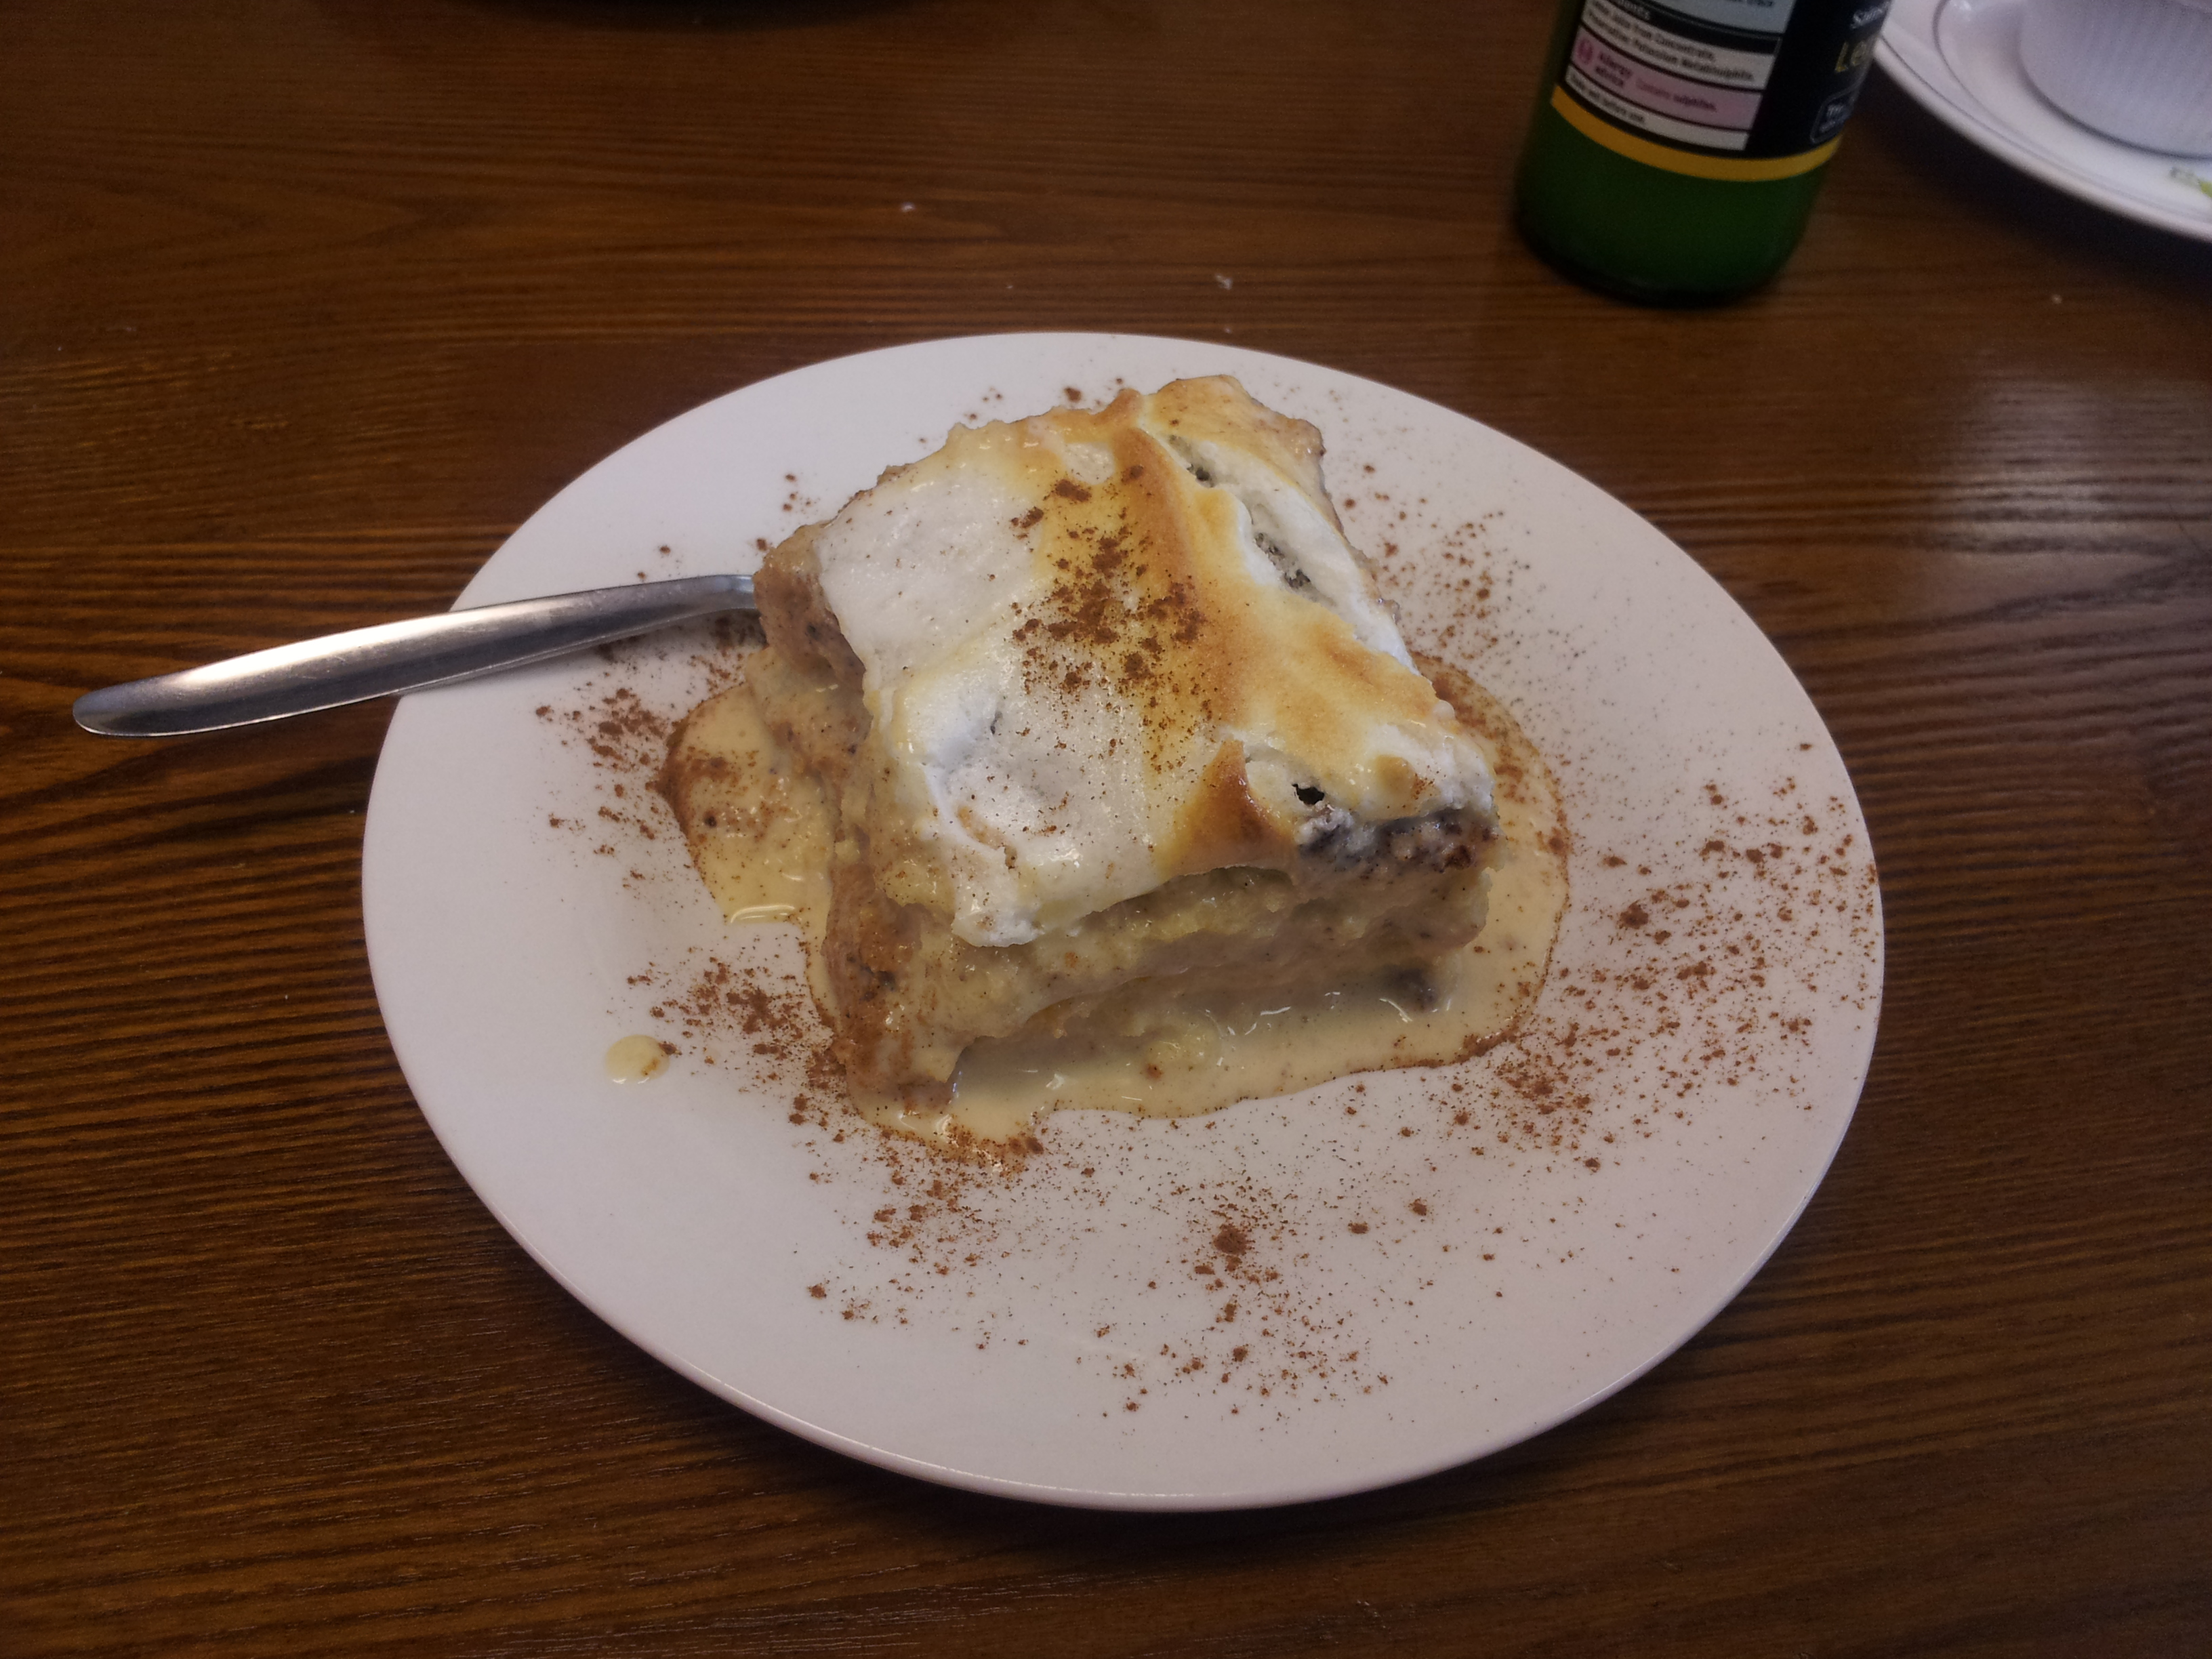 The Culinary Explorer - Tres leches cake